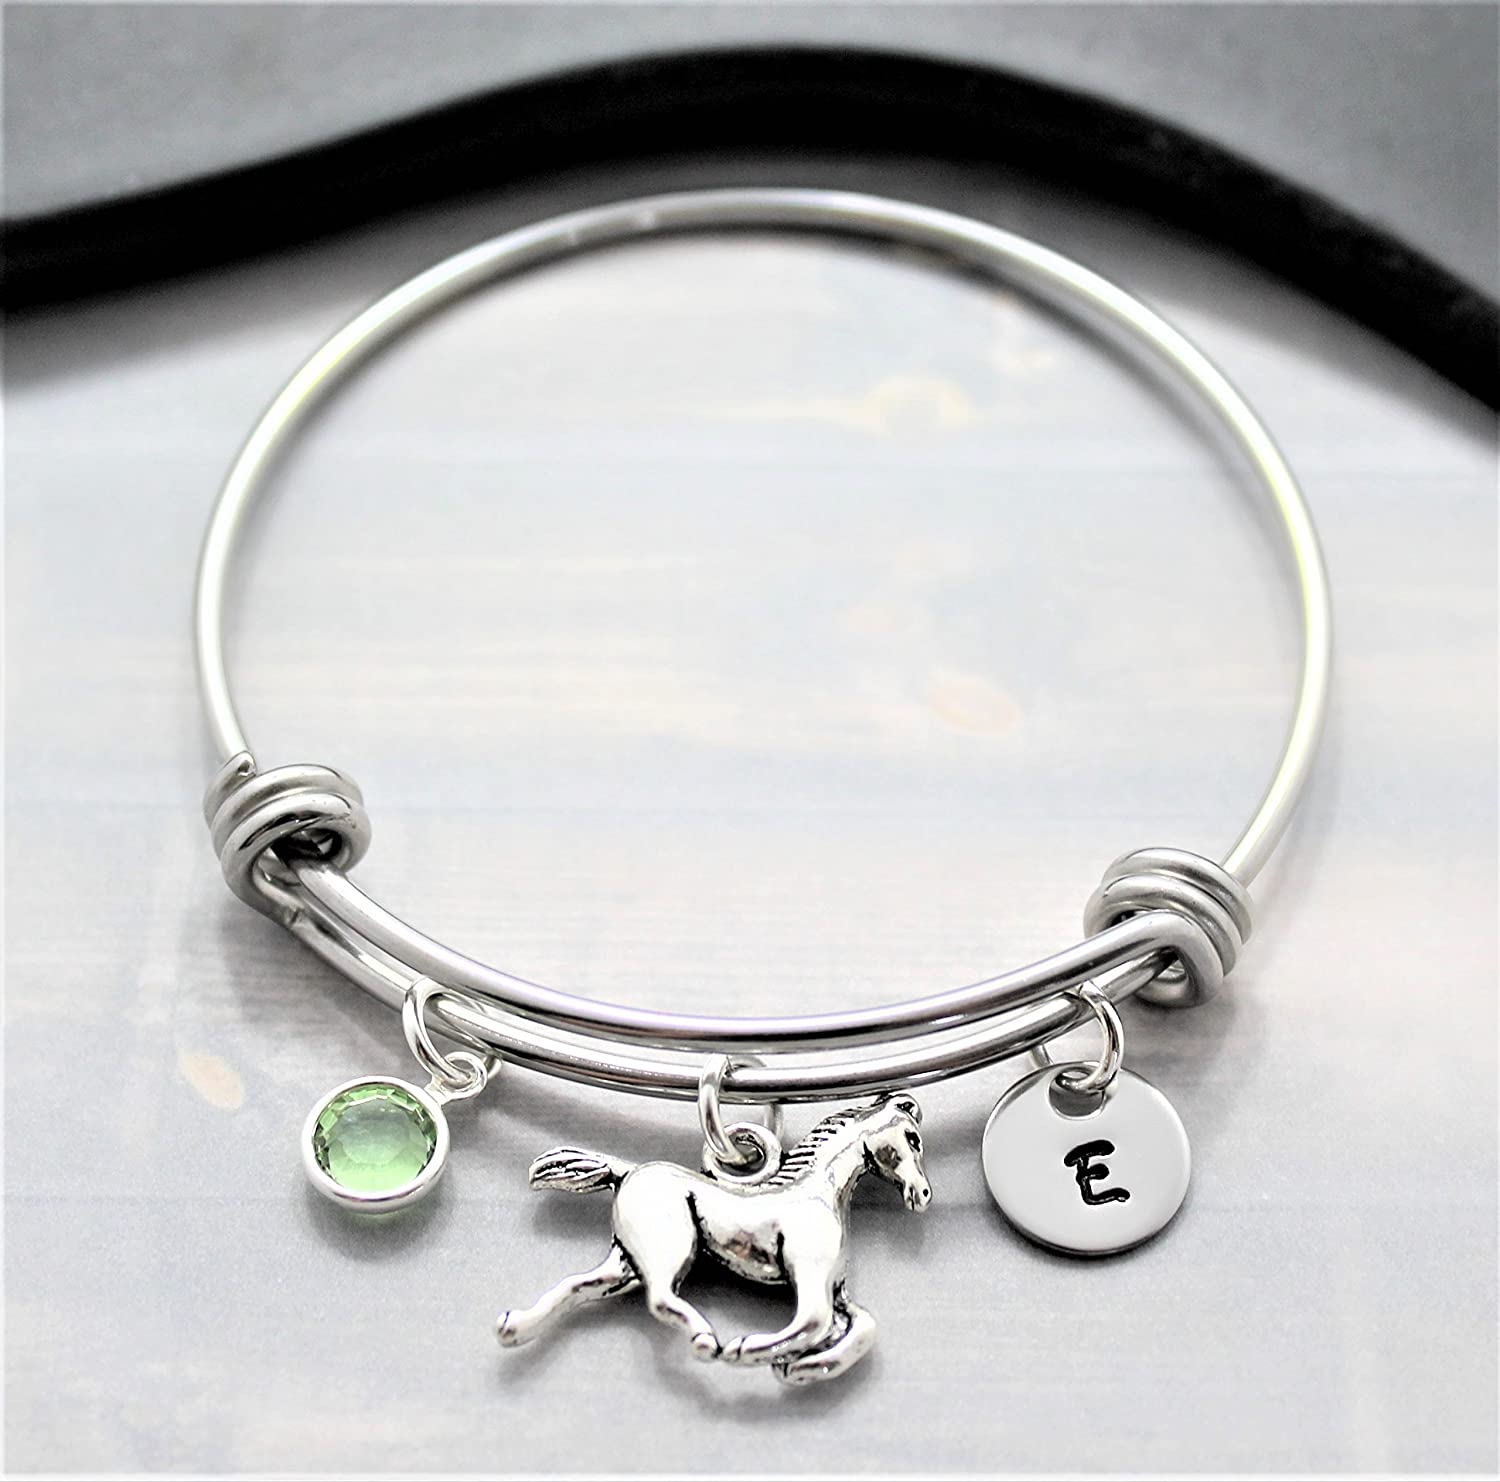 Horse Bracelet - Horse Jewelry - Horse Gifts for Women - Personalized Birthstone & Initial - Fast Shipping